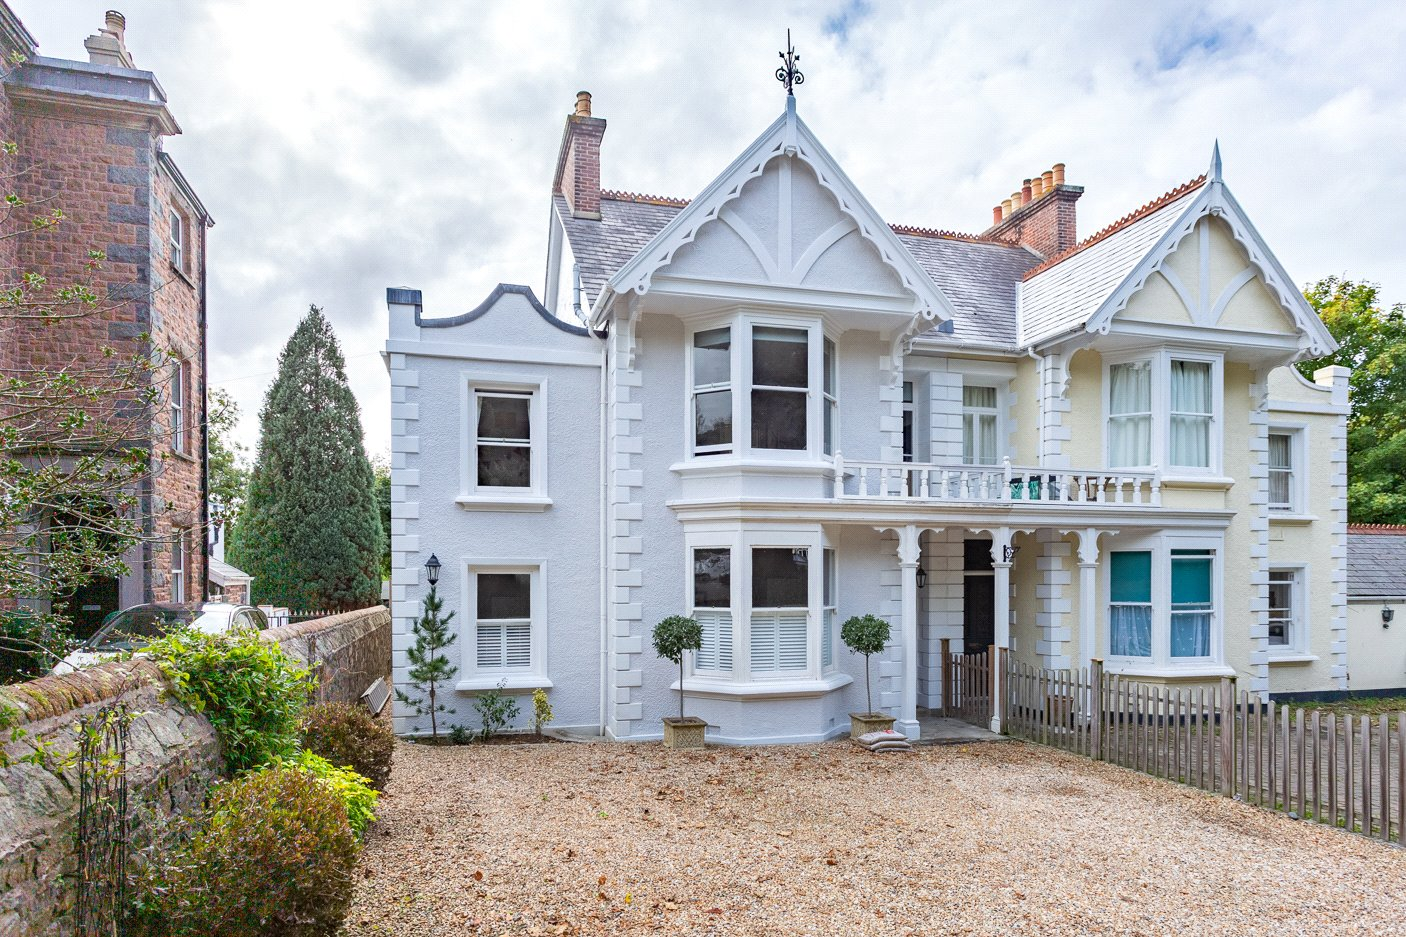 Property For Sale In Guernsey Homes And Flats To Buy Or Rent In Guernsey